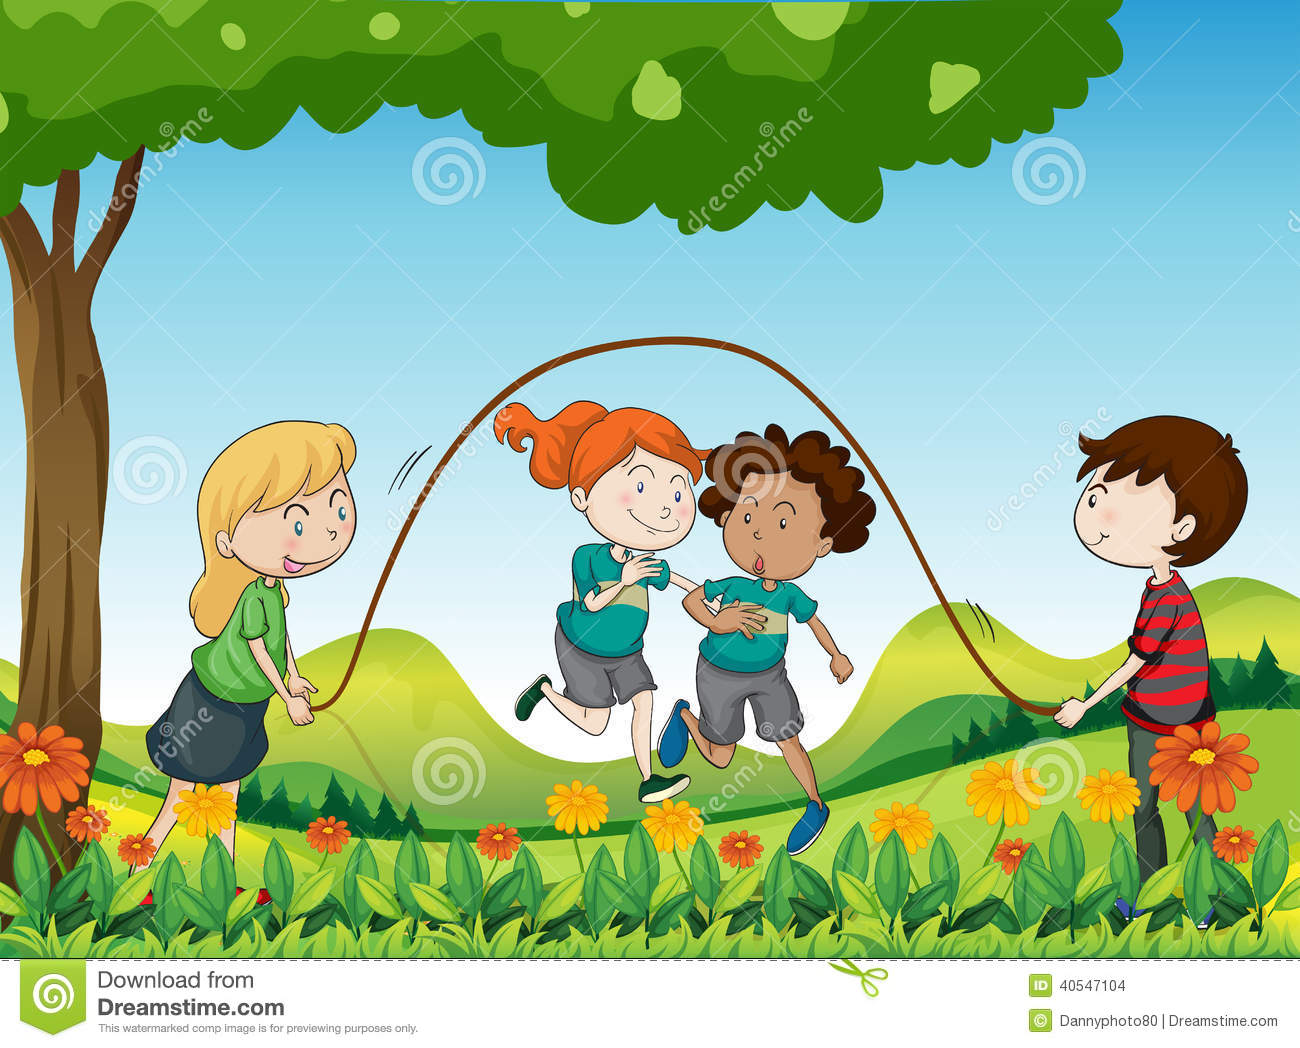 Playing garden drawing for kids - Download Four Kids Playing